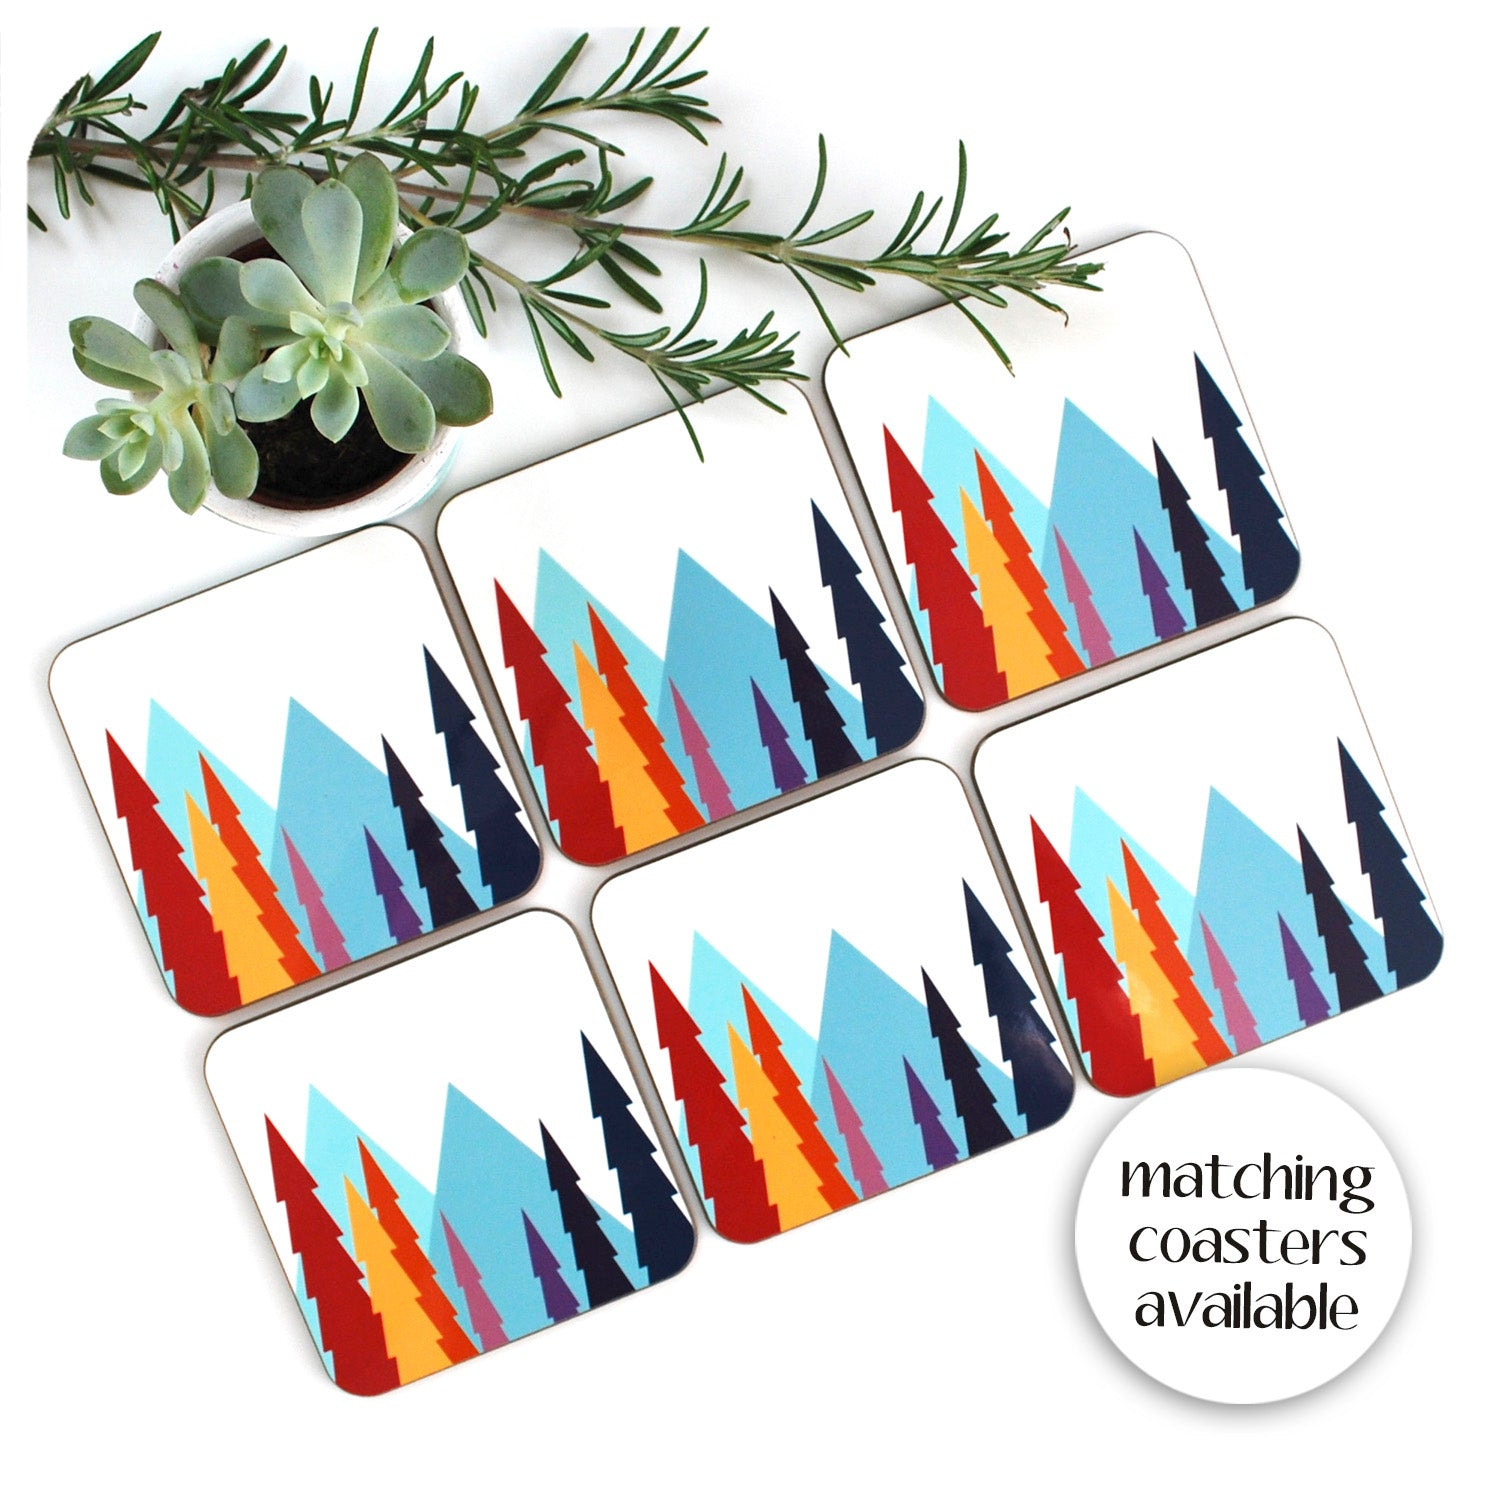 Nordic Trees Coasters, set of 6 to match placemats | The Inkabilly Emporium